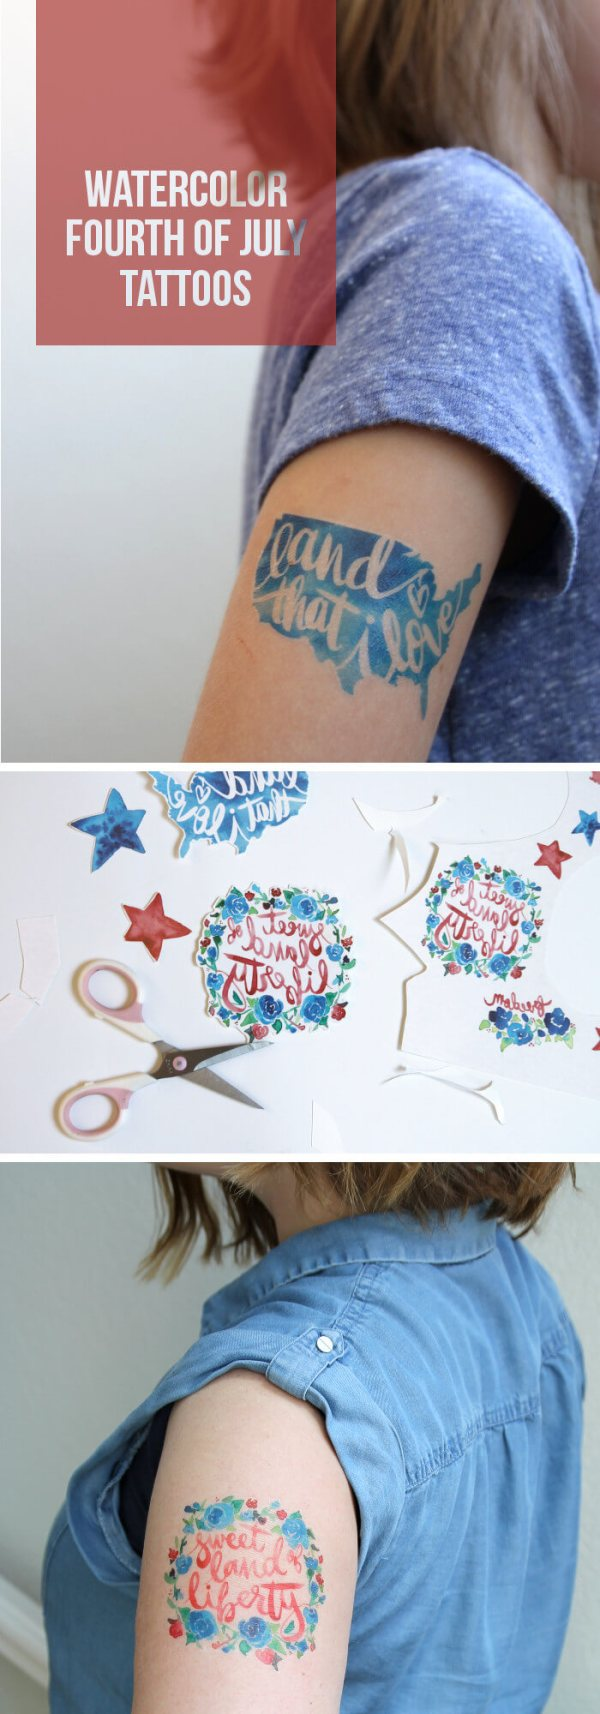 make watercolor fourth of july